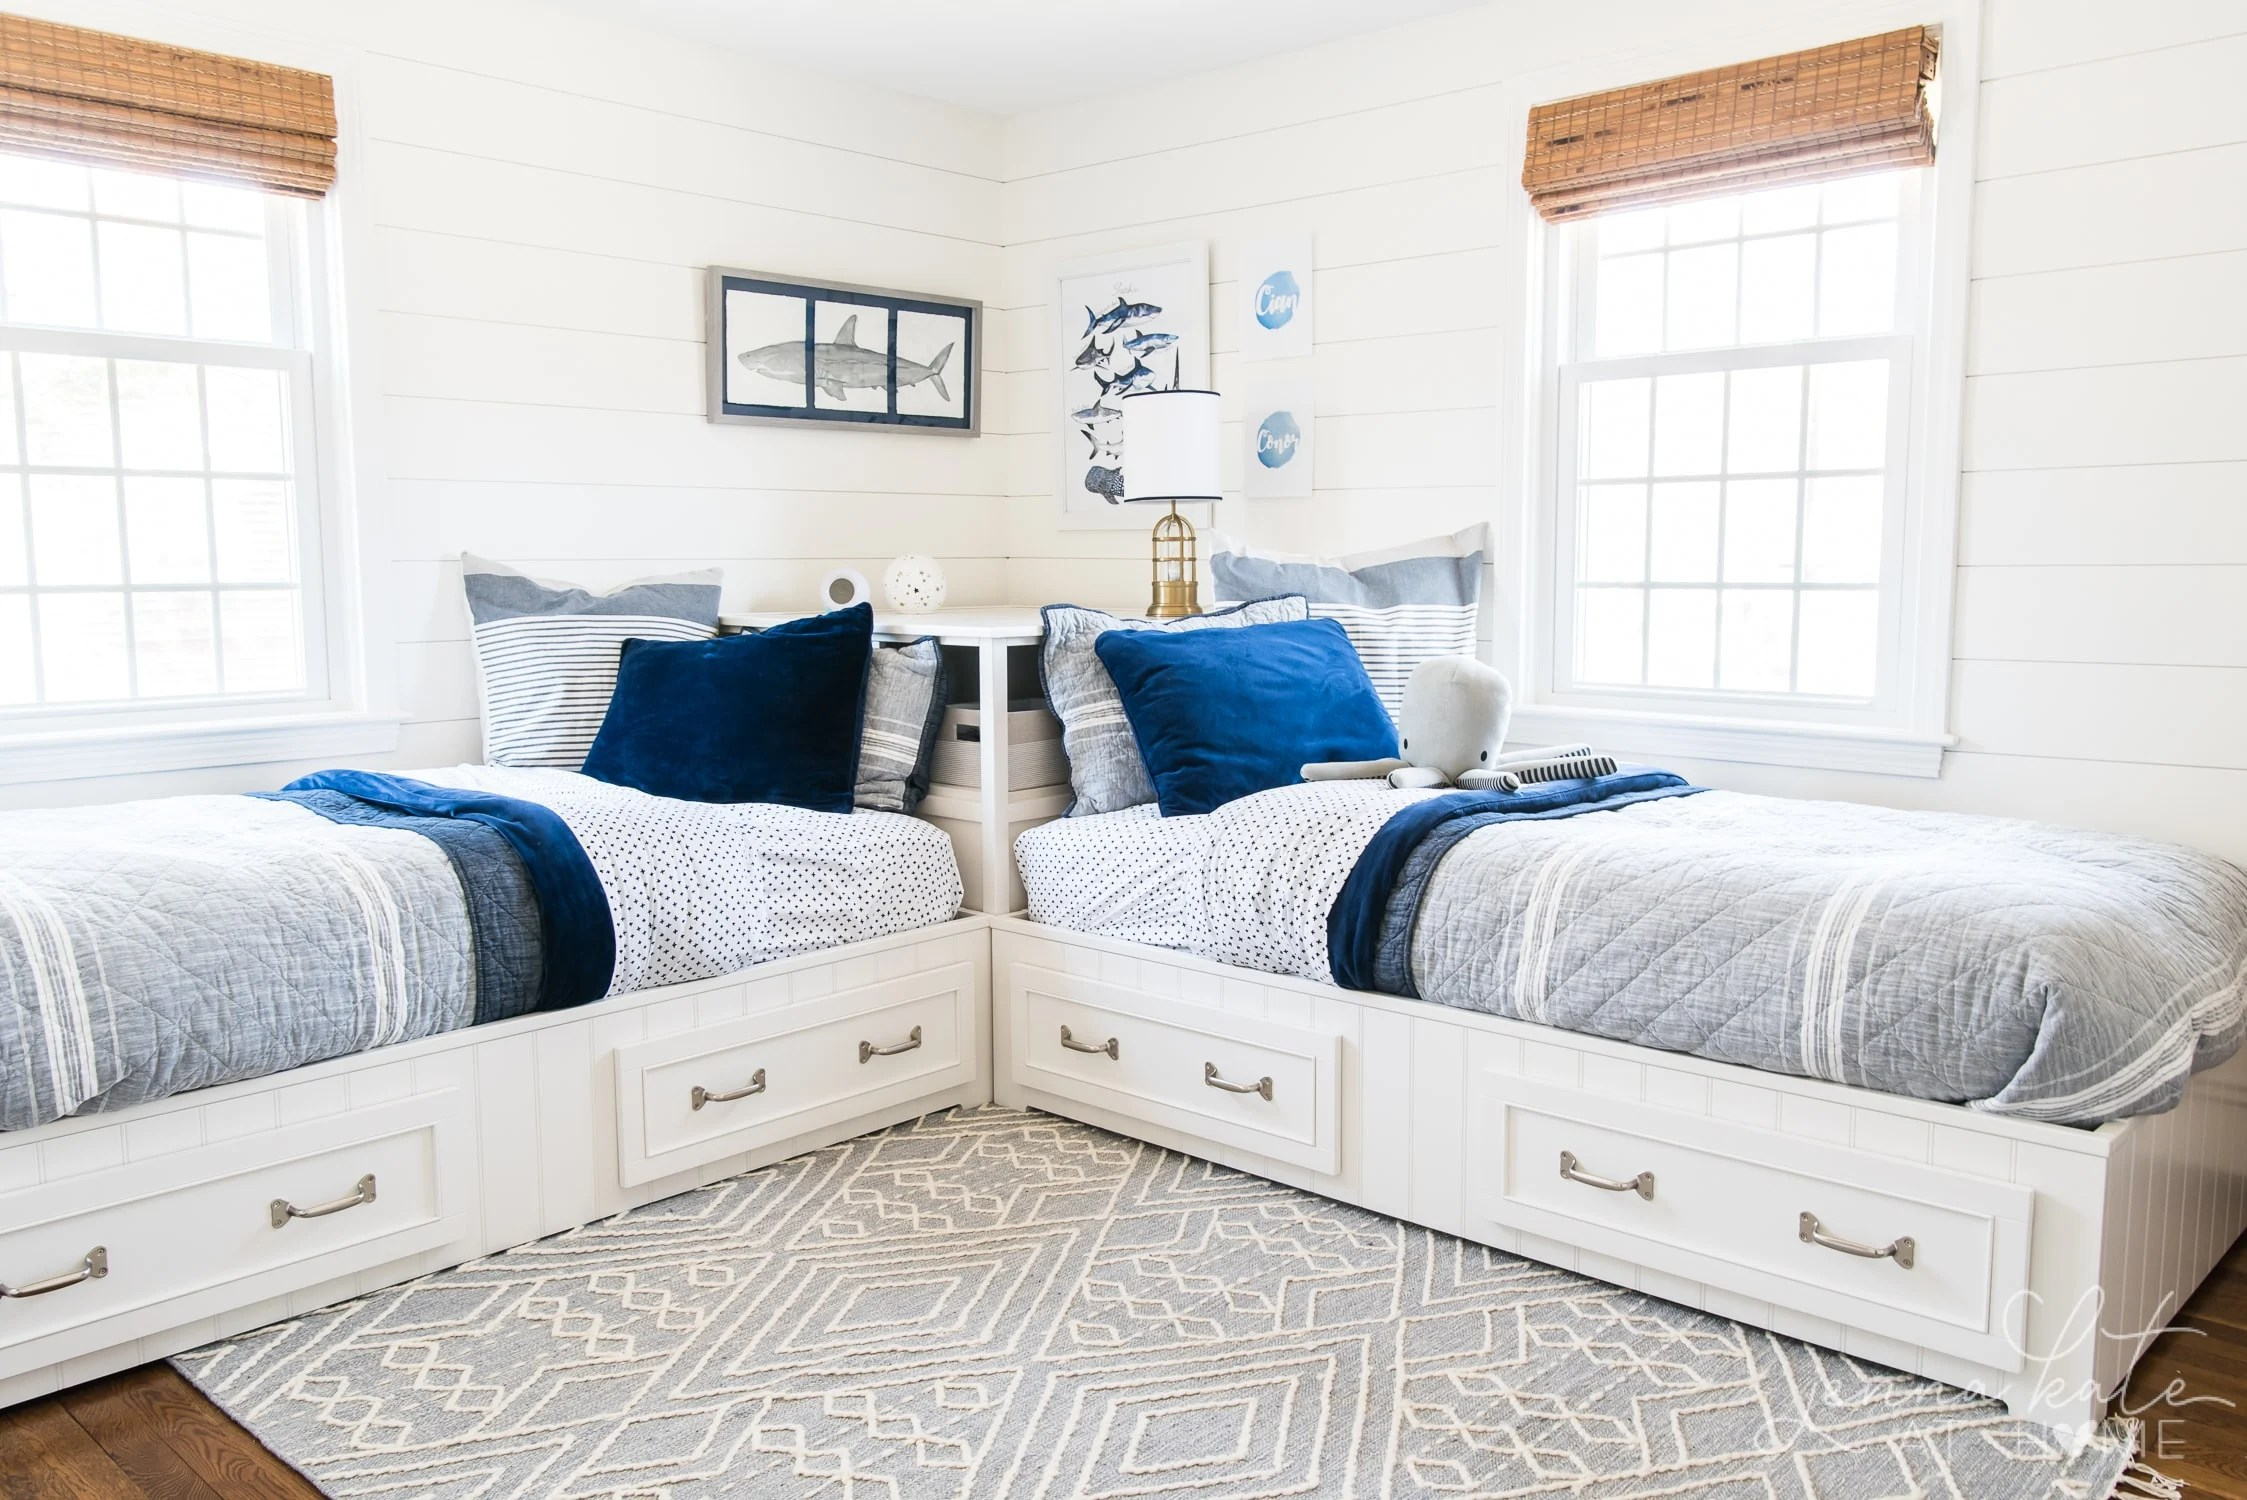 Kid boy bedroom design - coastal style bedroom set and navy and grey bedding with a shark theme